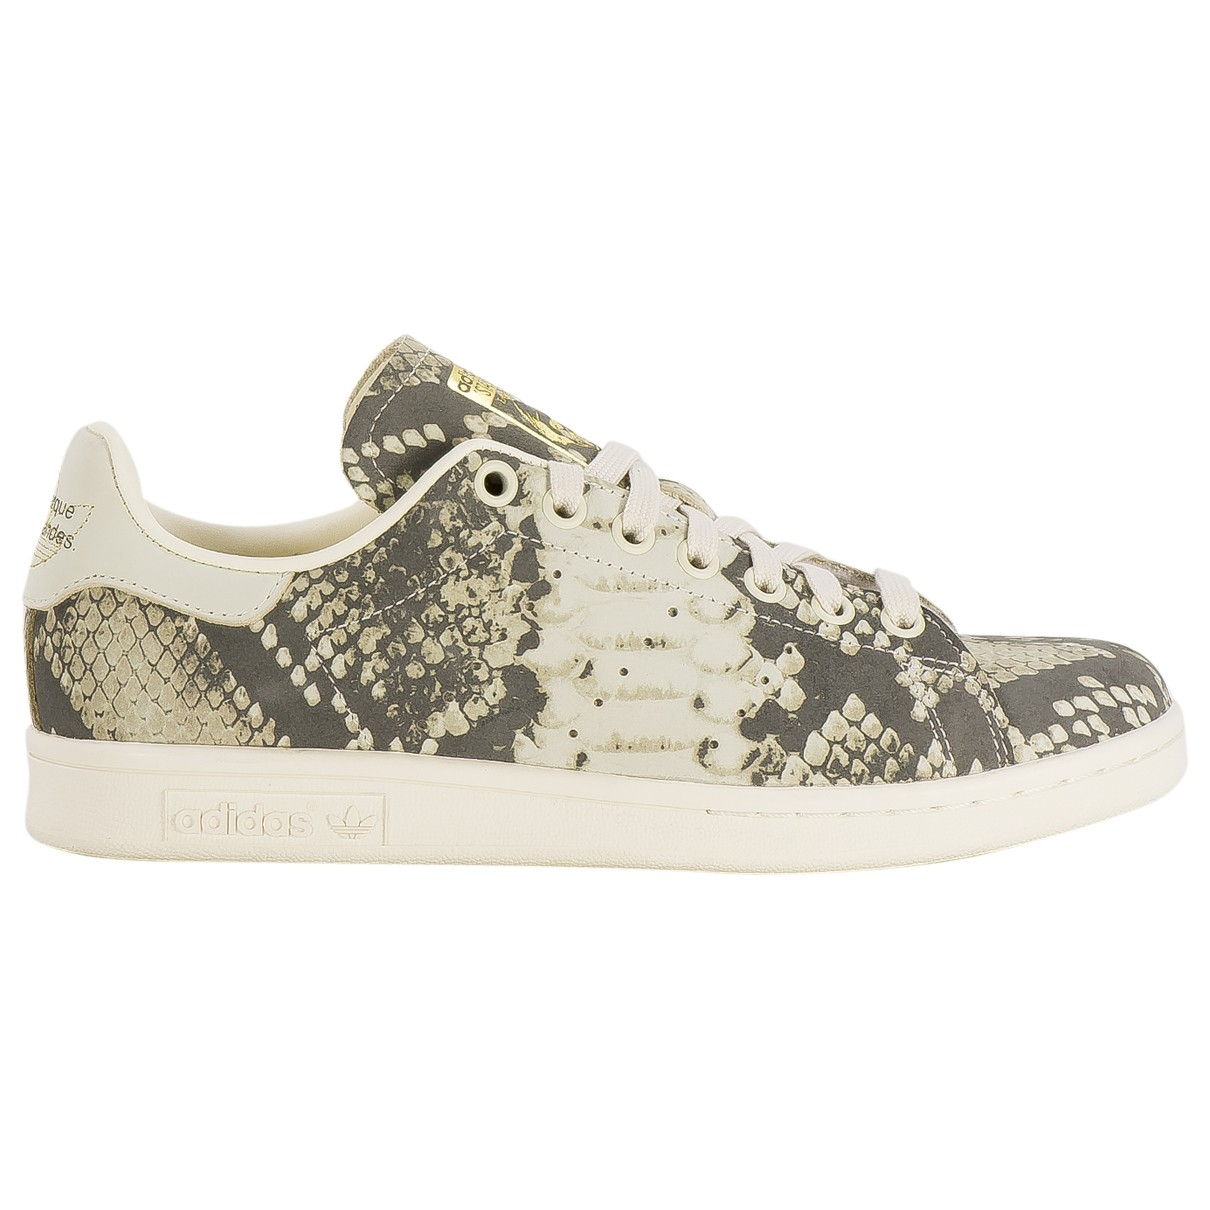 Adidas Stan Smith Multicolour Leather Trainers for Women 38.5 EU